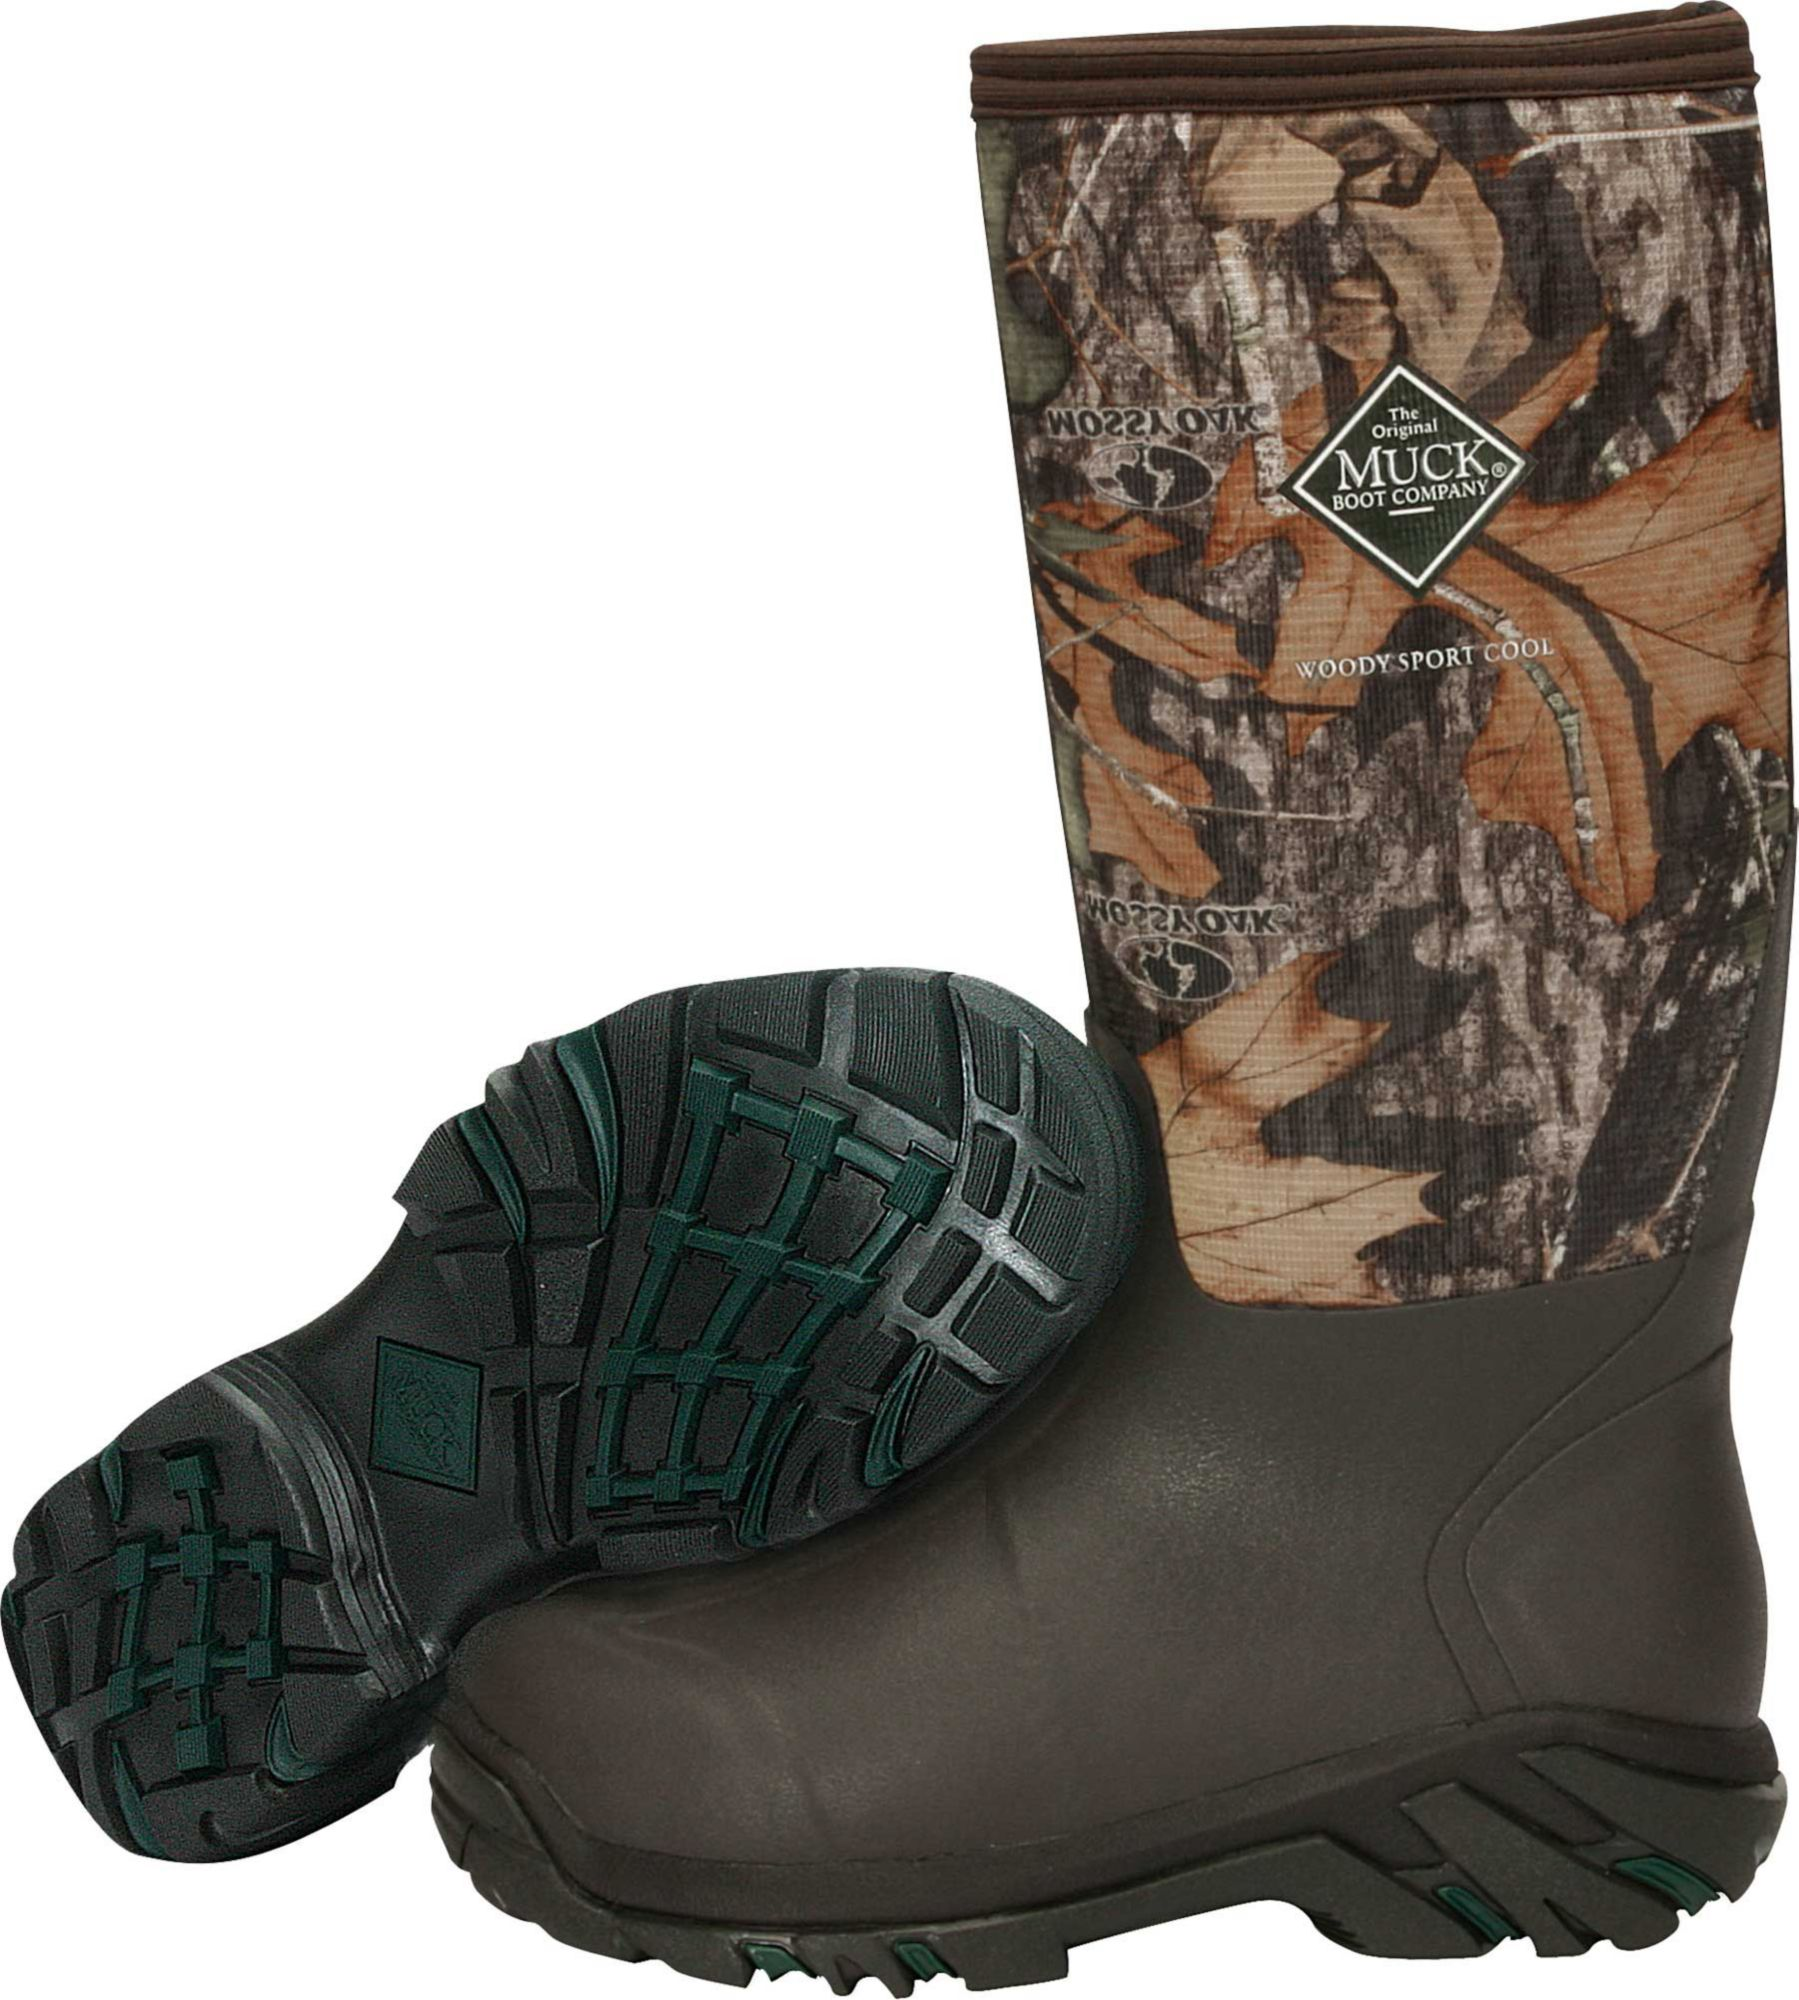 Muck Boot Men's Woody Sport Cool Rubber Hunting Boots| DICK'S ...